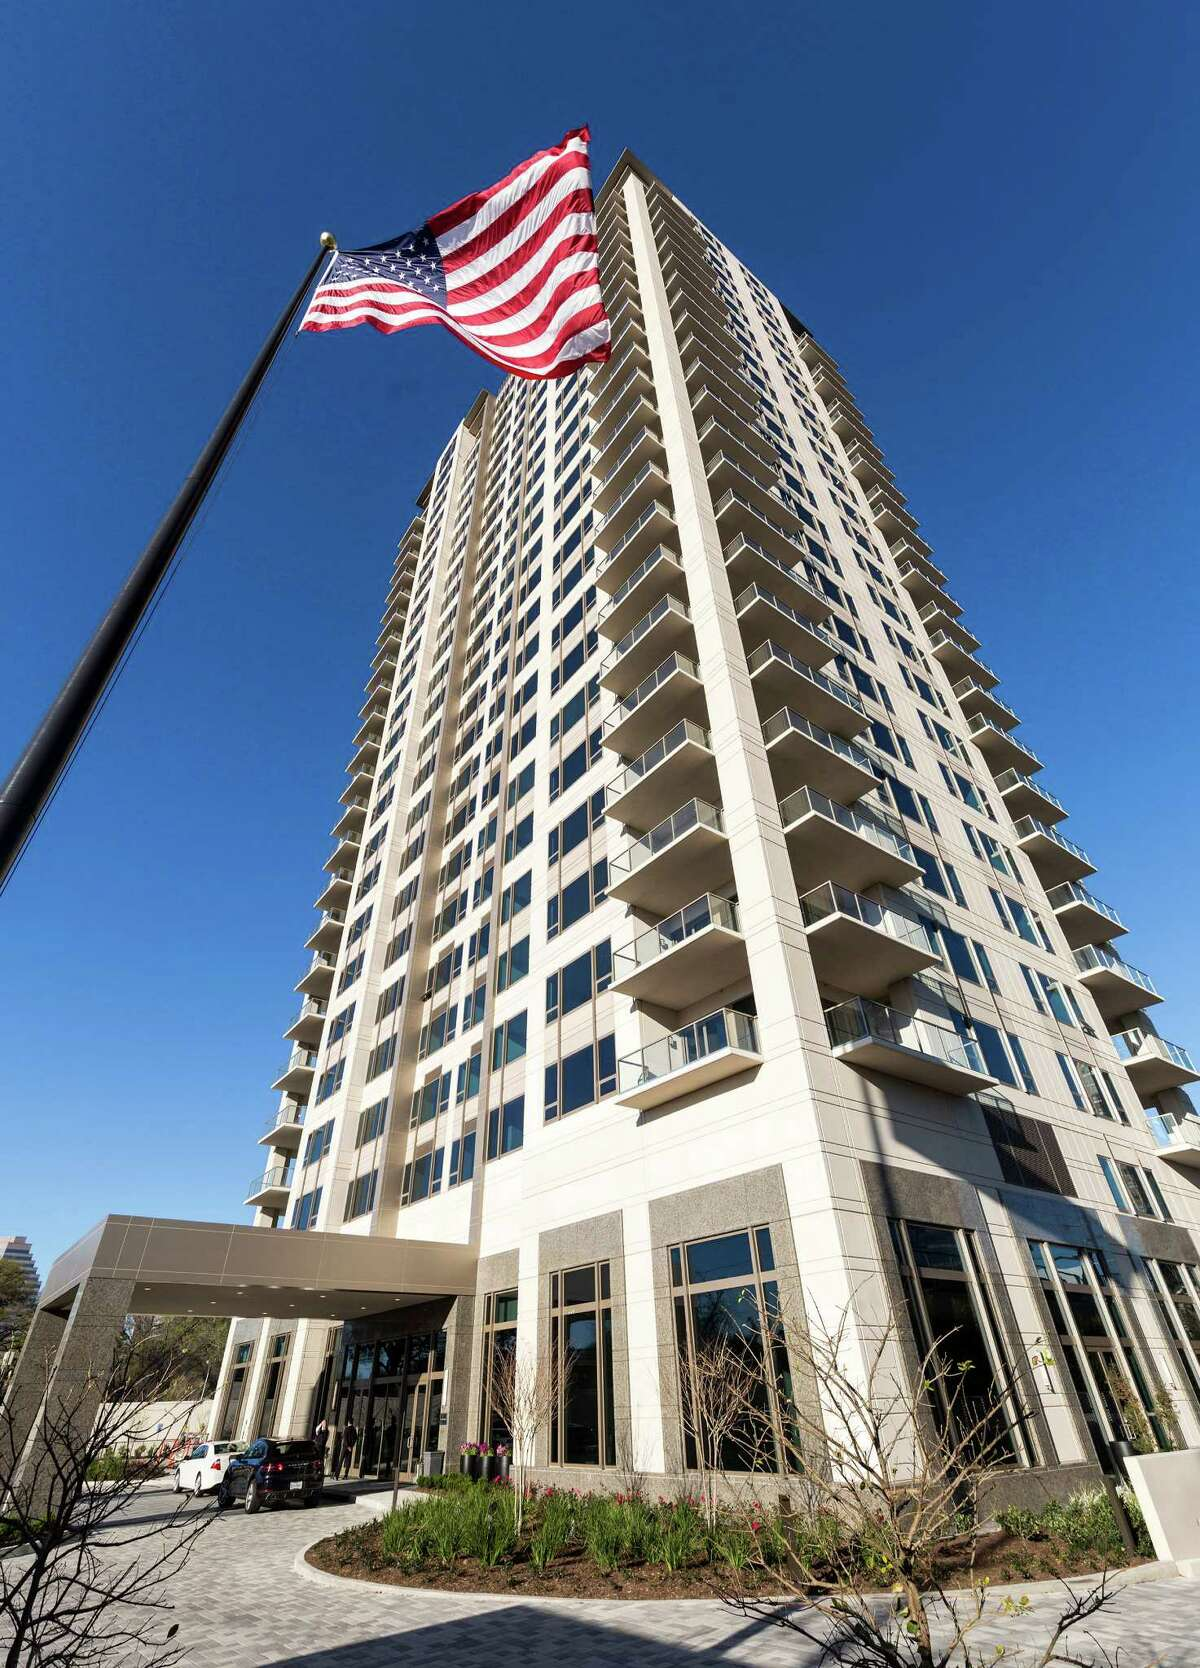 Most of the 46 units in the Belfiore are 4,650 square feet, but there are two 8,000-square-foot penthouses. The first residents are expected to move in to the Uptown tower at the end of March. T